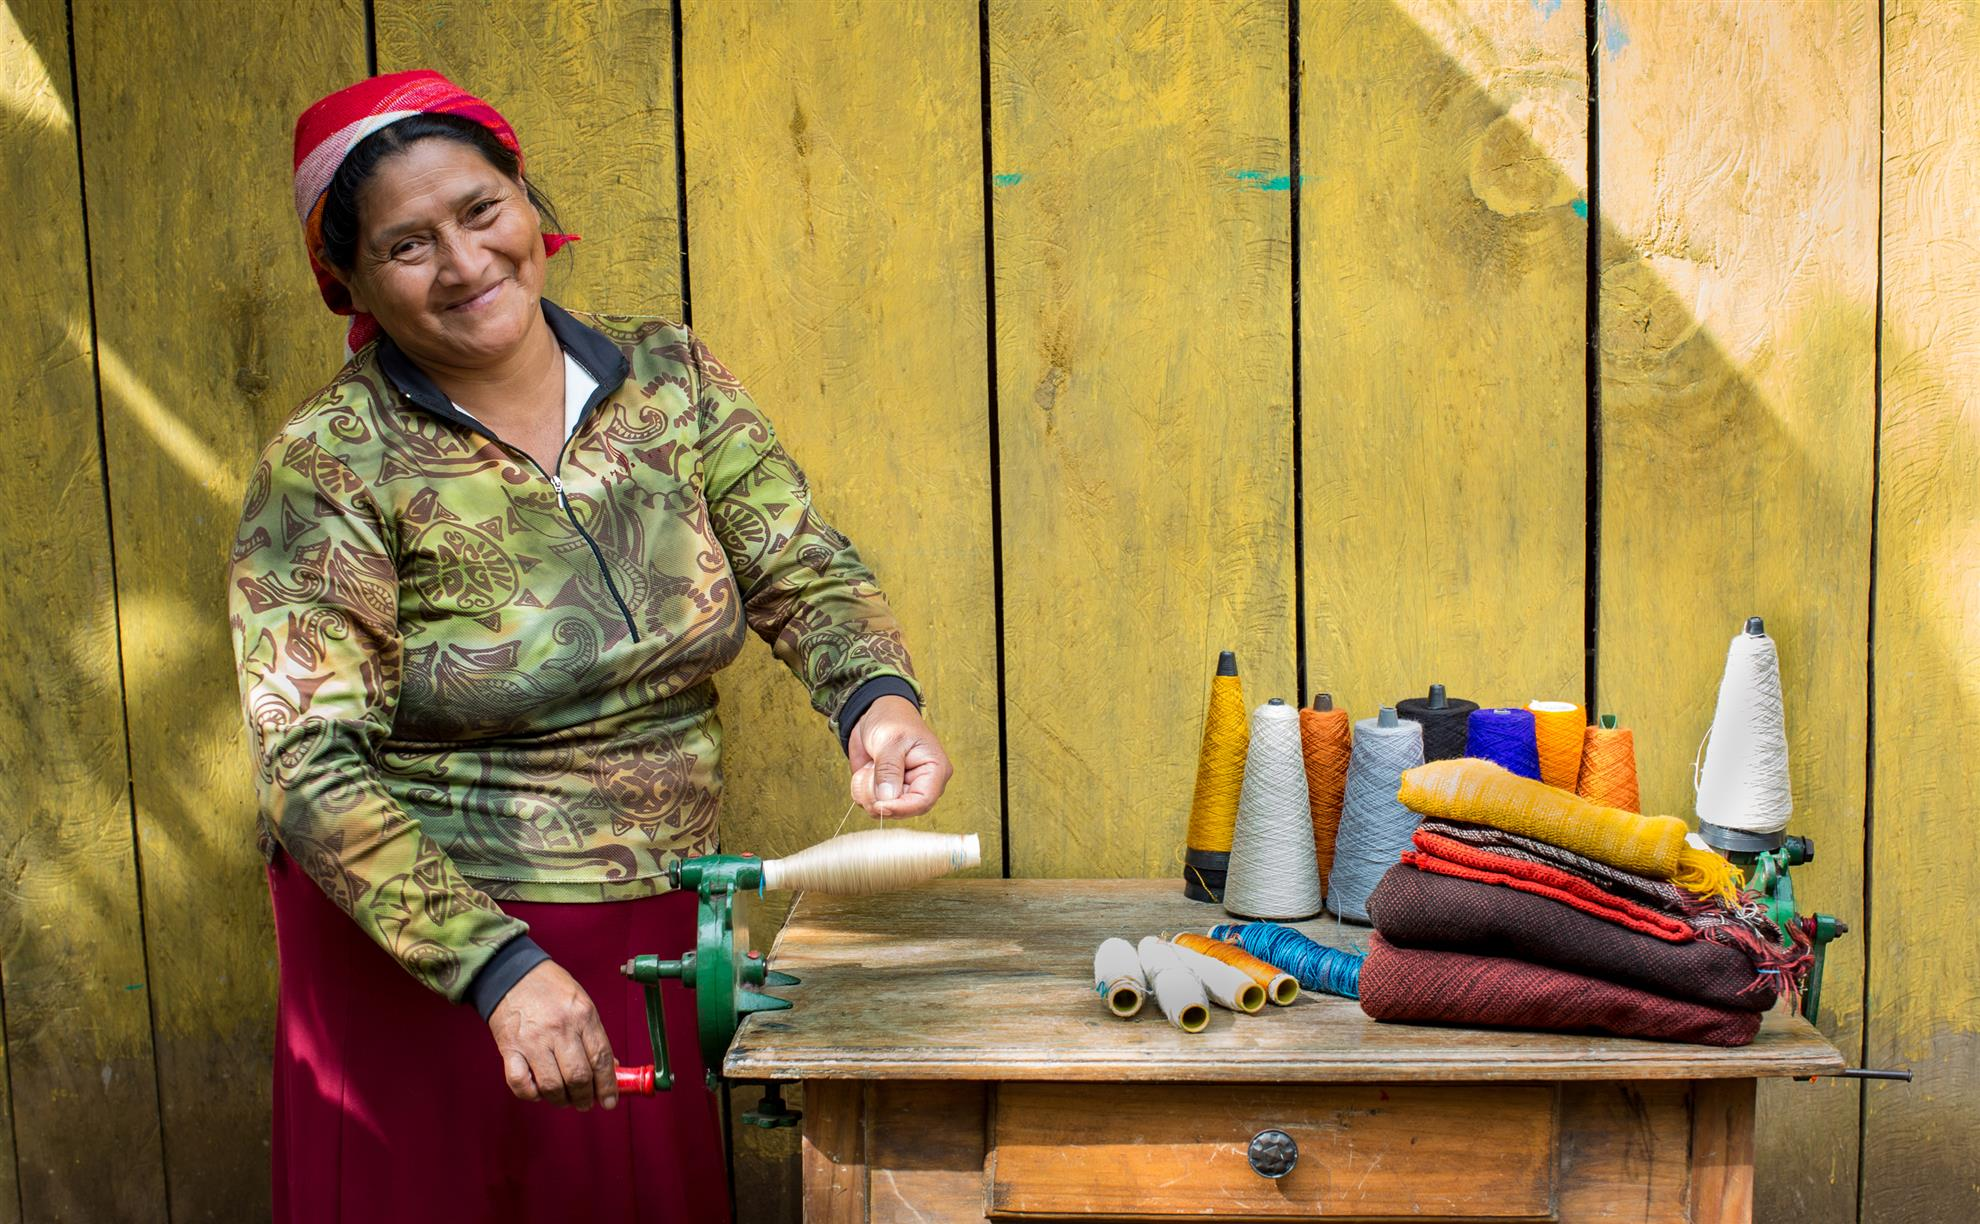 Remigia Dominiguez, a weaver supported by a microcredit loan from Rotarians, spools thread for her loom outside her studio and workshop in El Cacao, Honduras. © Rotary International/Monika Lozinska